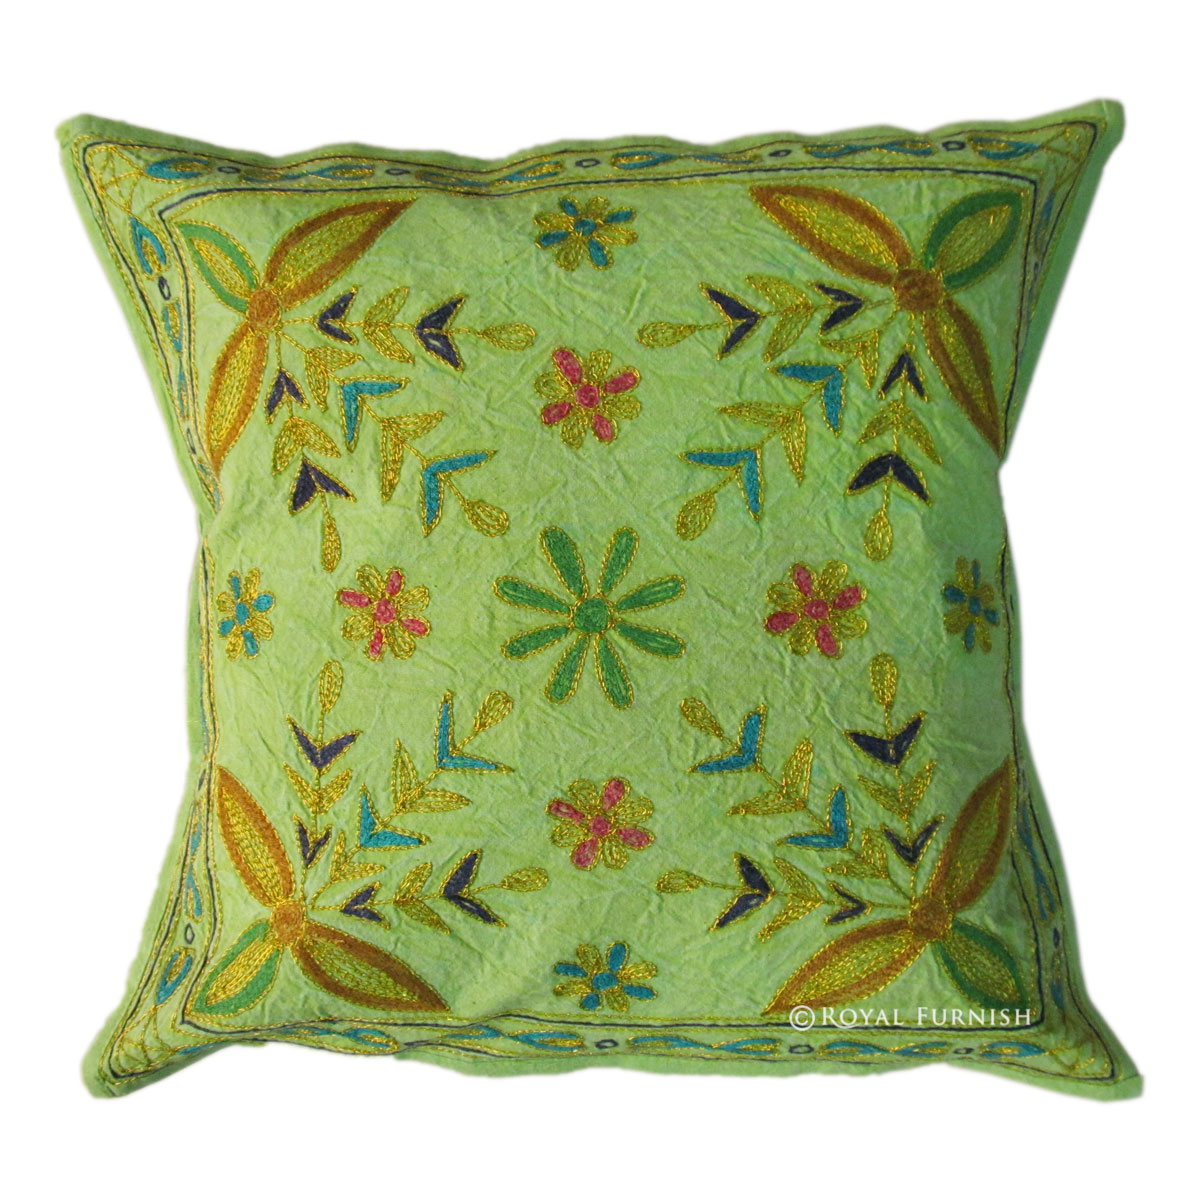 Floral Embroidered Decorative Pillow : Indian Ari Zari Embroidered Decorative Floral Cotton Throw Pillow Case - RoyalFurnish.com